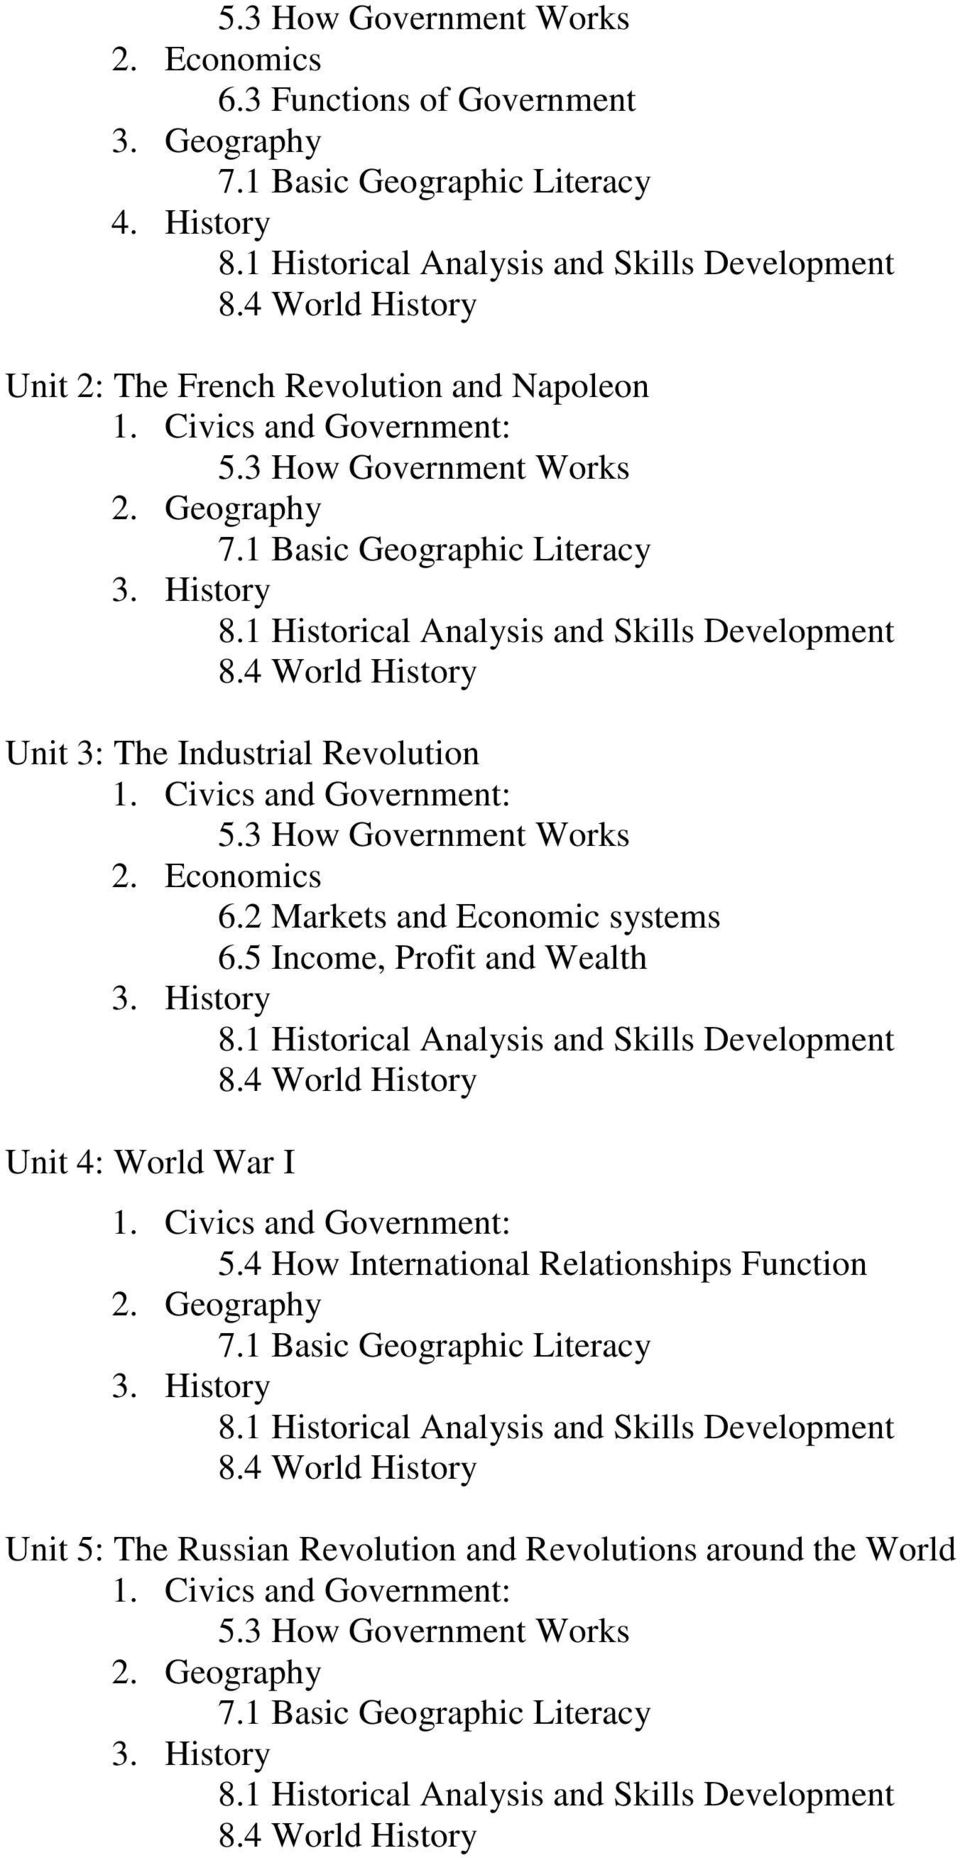 History Unit 3: The Industrial Revolution 5.3 How Government Works 2. Economics 6.2 Markets and Economic systems 6.